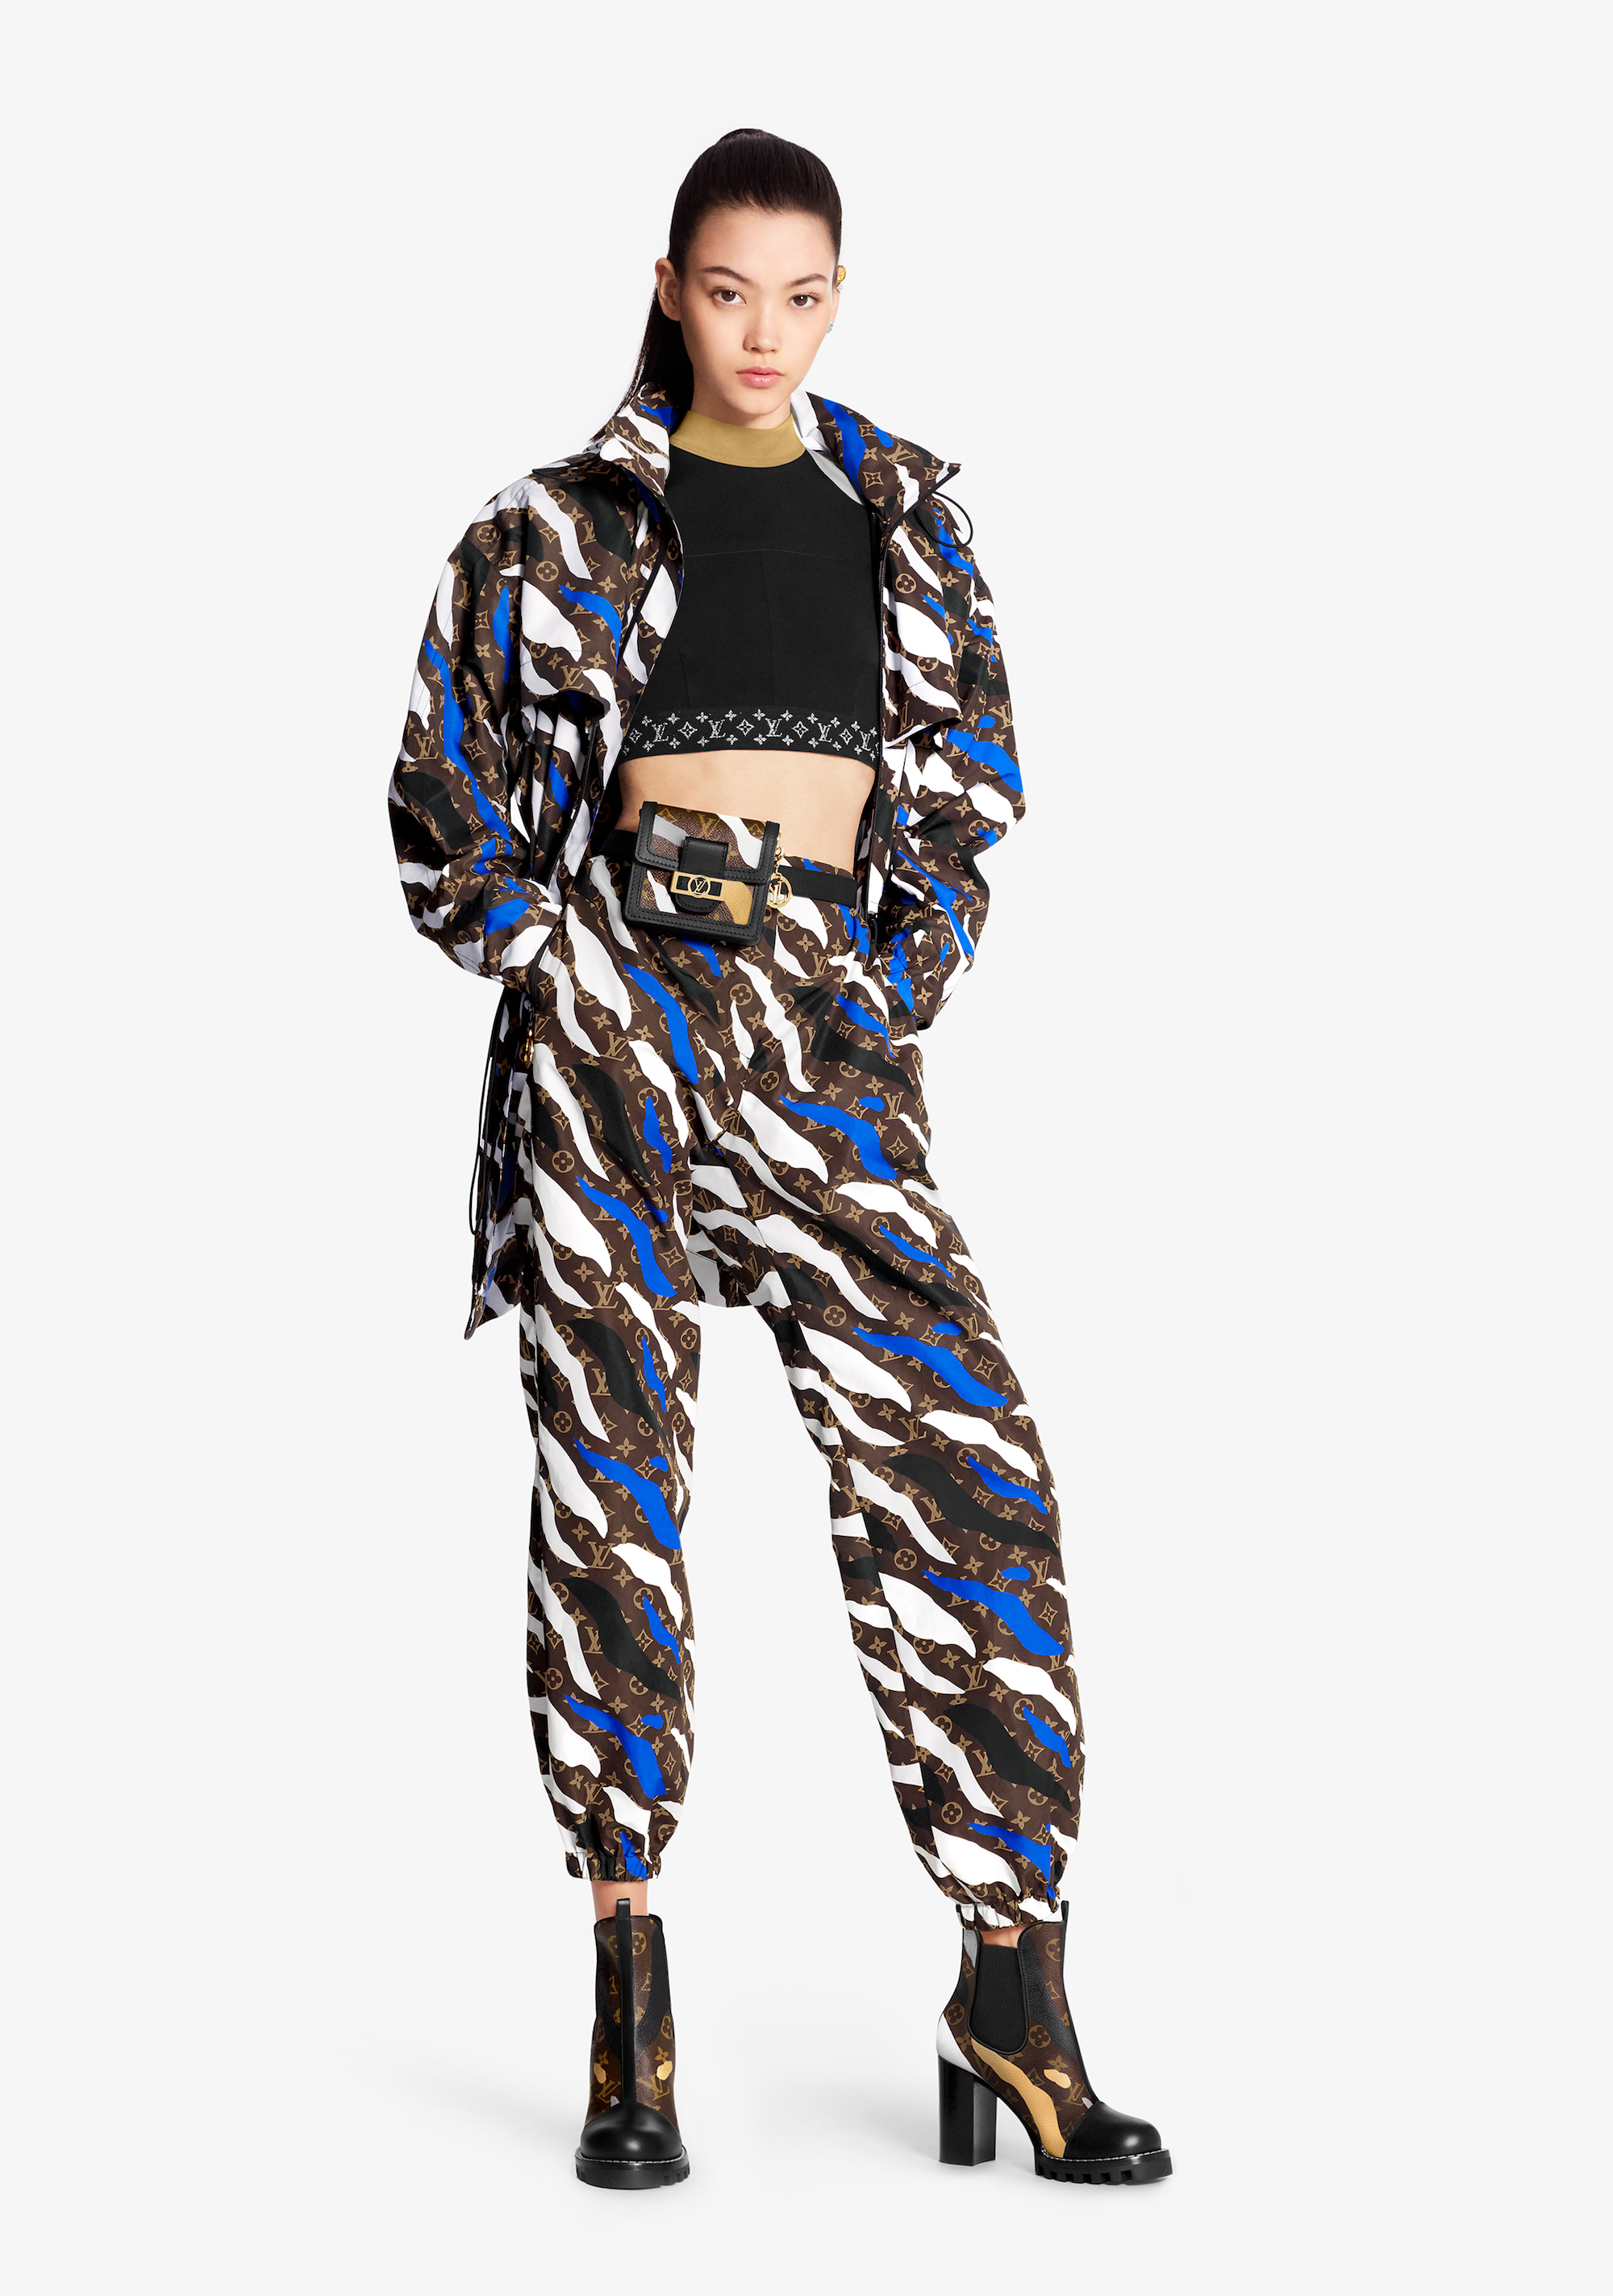 Louis Vuitton x League of Legends capsule collection co-ord